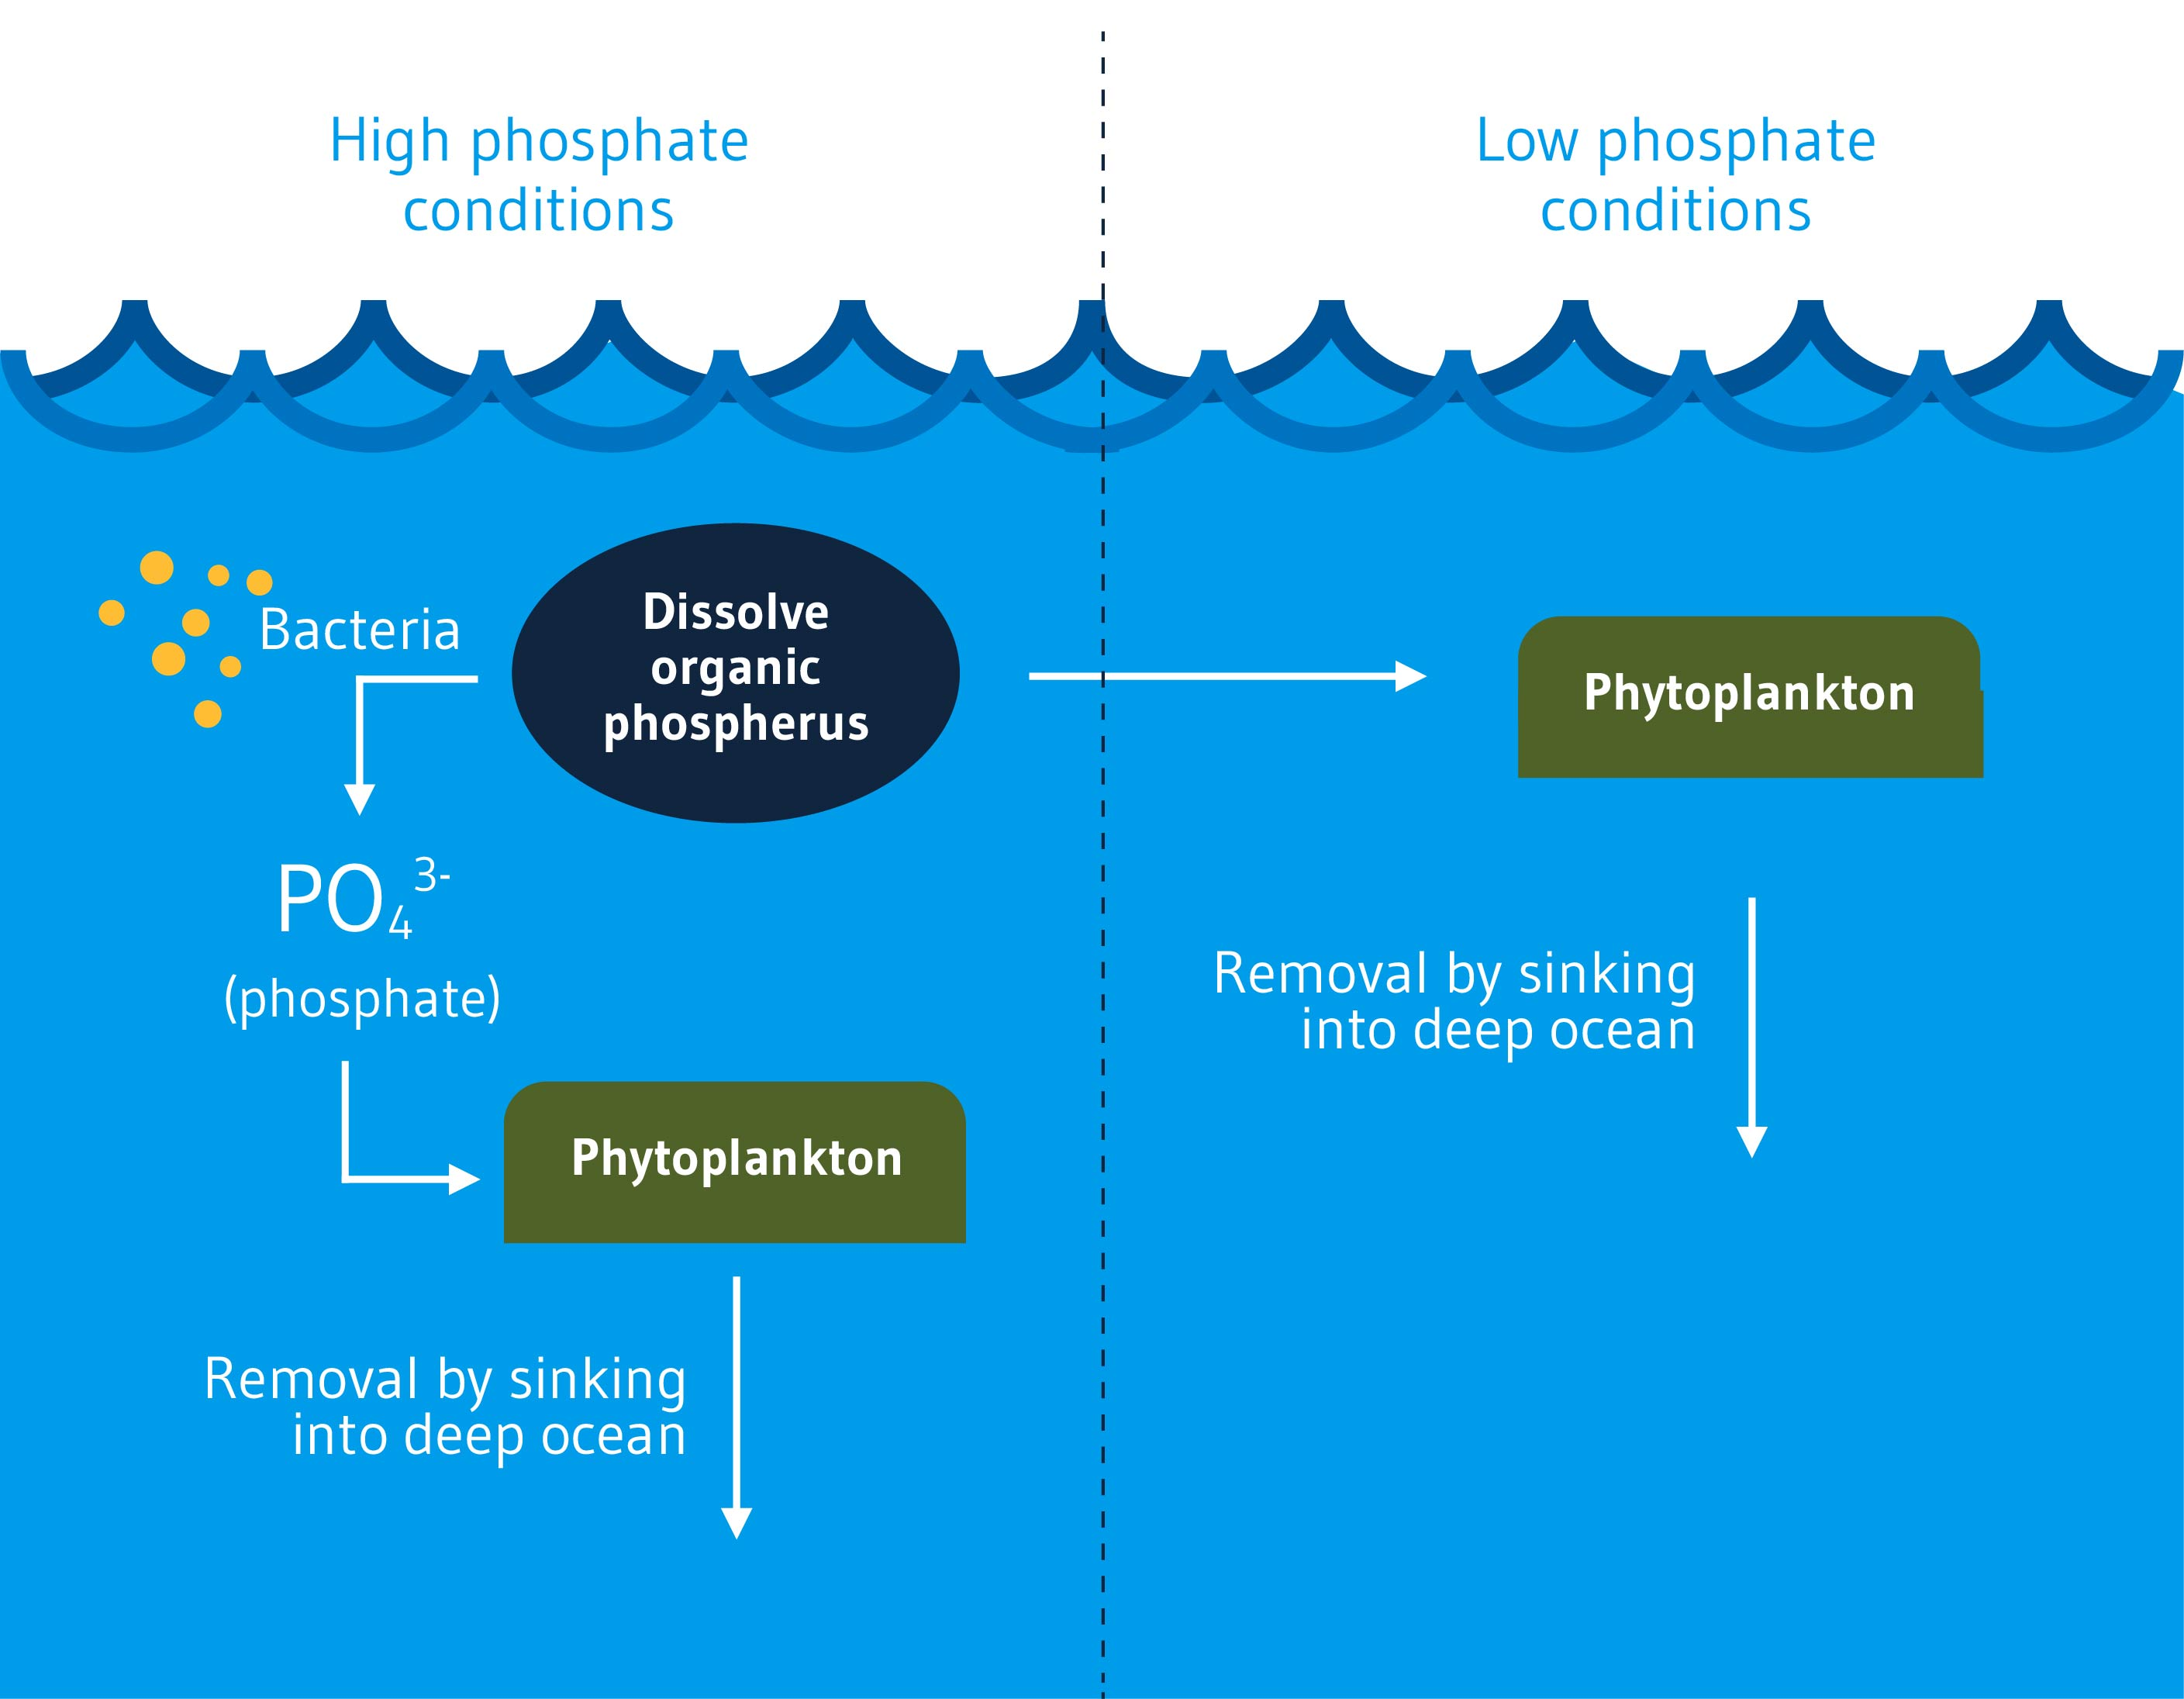 Fig. 1. Phosphorus cycle in the ocean. Phosphorus is required by all living organisms to make DNA, RNA, ATP (energy molecules), and other essential organic compounds. The most abundant phosphorus exists in the form of phosphate (PO43-) ions. In the ocean, phytoplankton utilize phosphate for growth under high phosphate conditions. After assimilation, a fraction of the phosphorus is released back to the ocean pool as dissolved organic phosphorus, which is in turn converted back to phosphate by bacteria. However, under low phosphate conditions, phytoplankton and other marine organisms will utilize dissolved organic phosphorus and/or scavenge for phosphate by releasing phosphate from organic molecules using alkaline phosphatase.